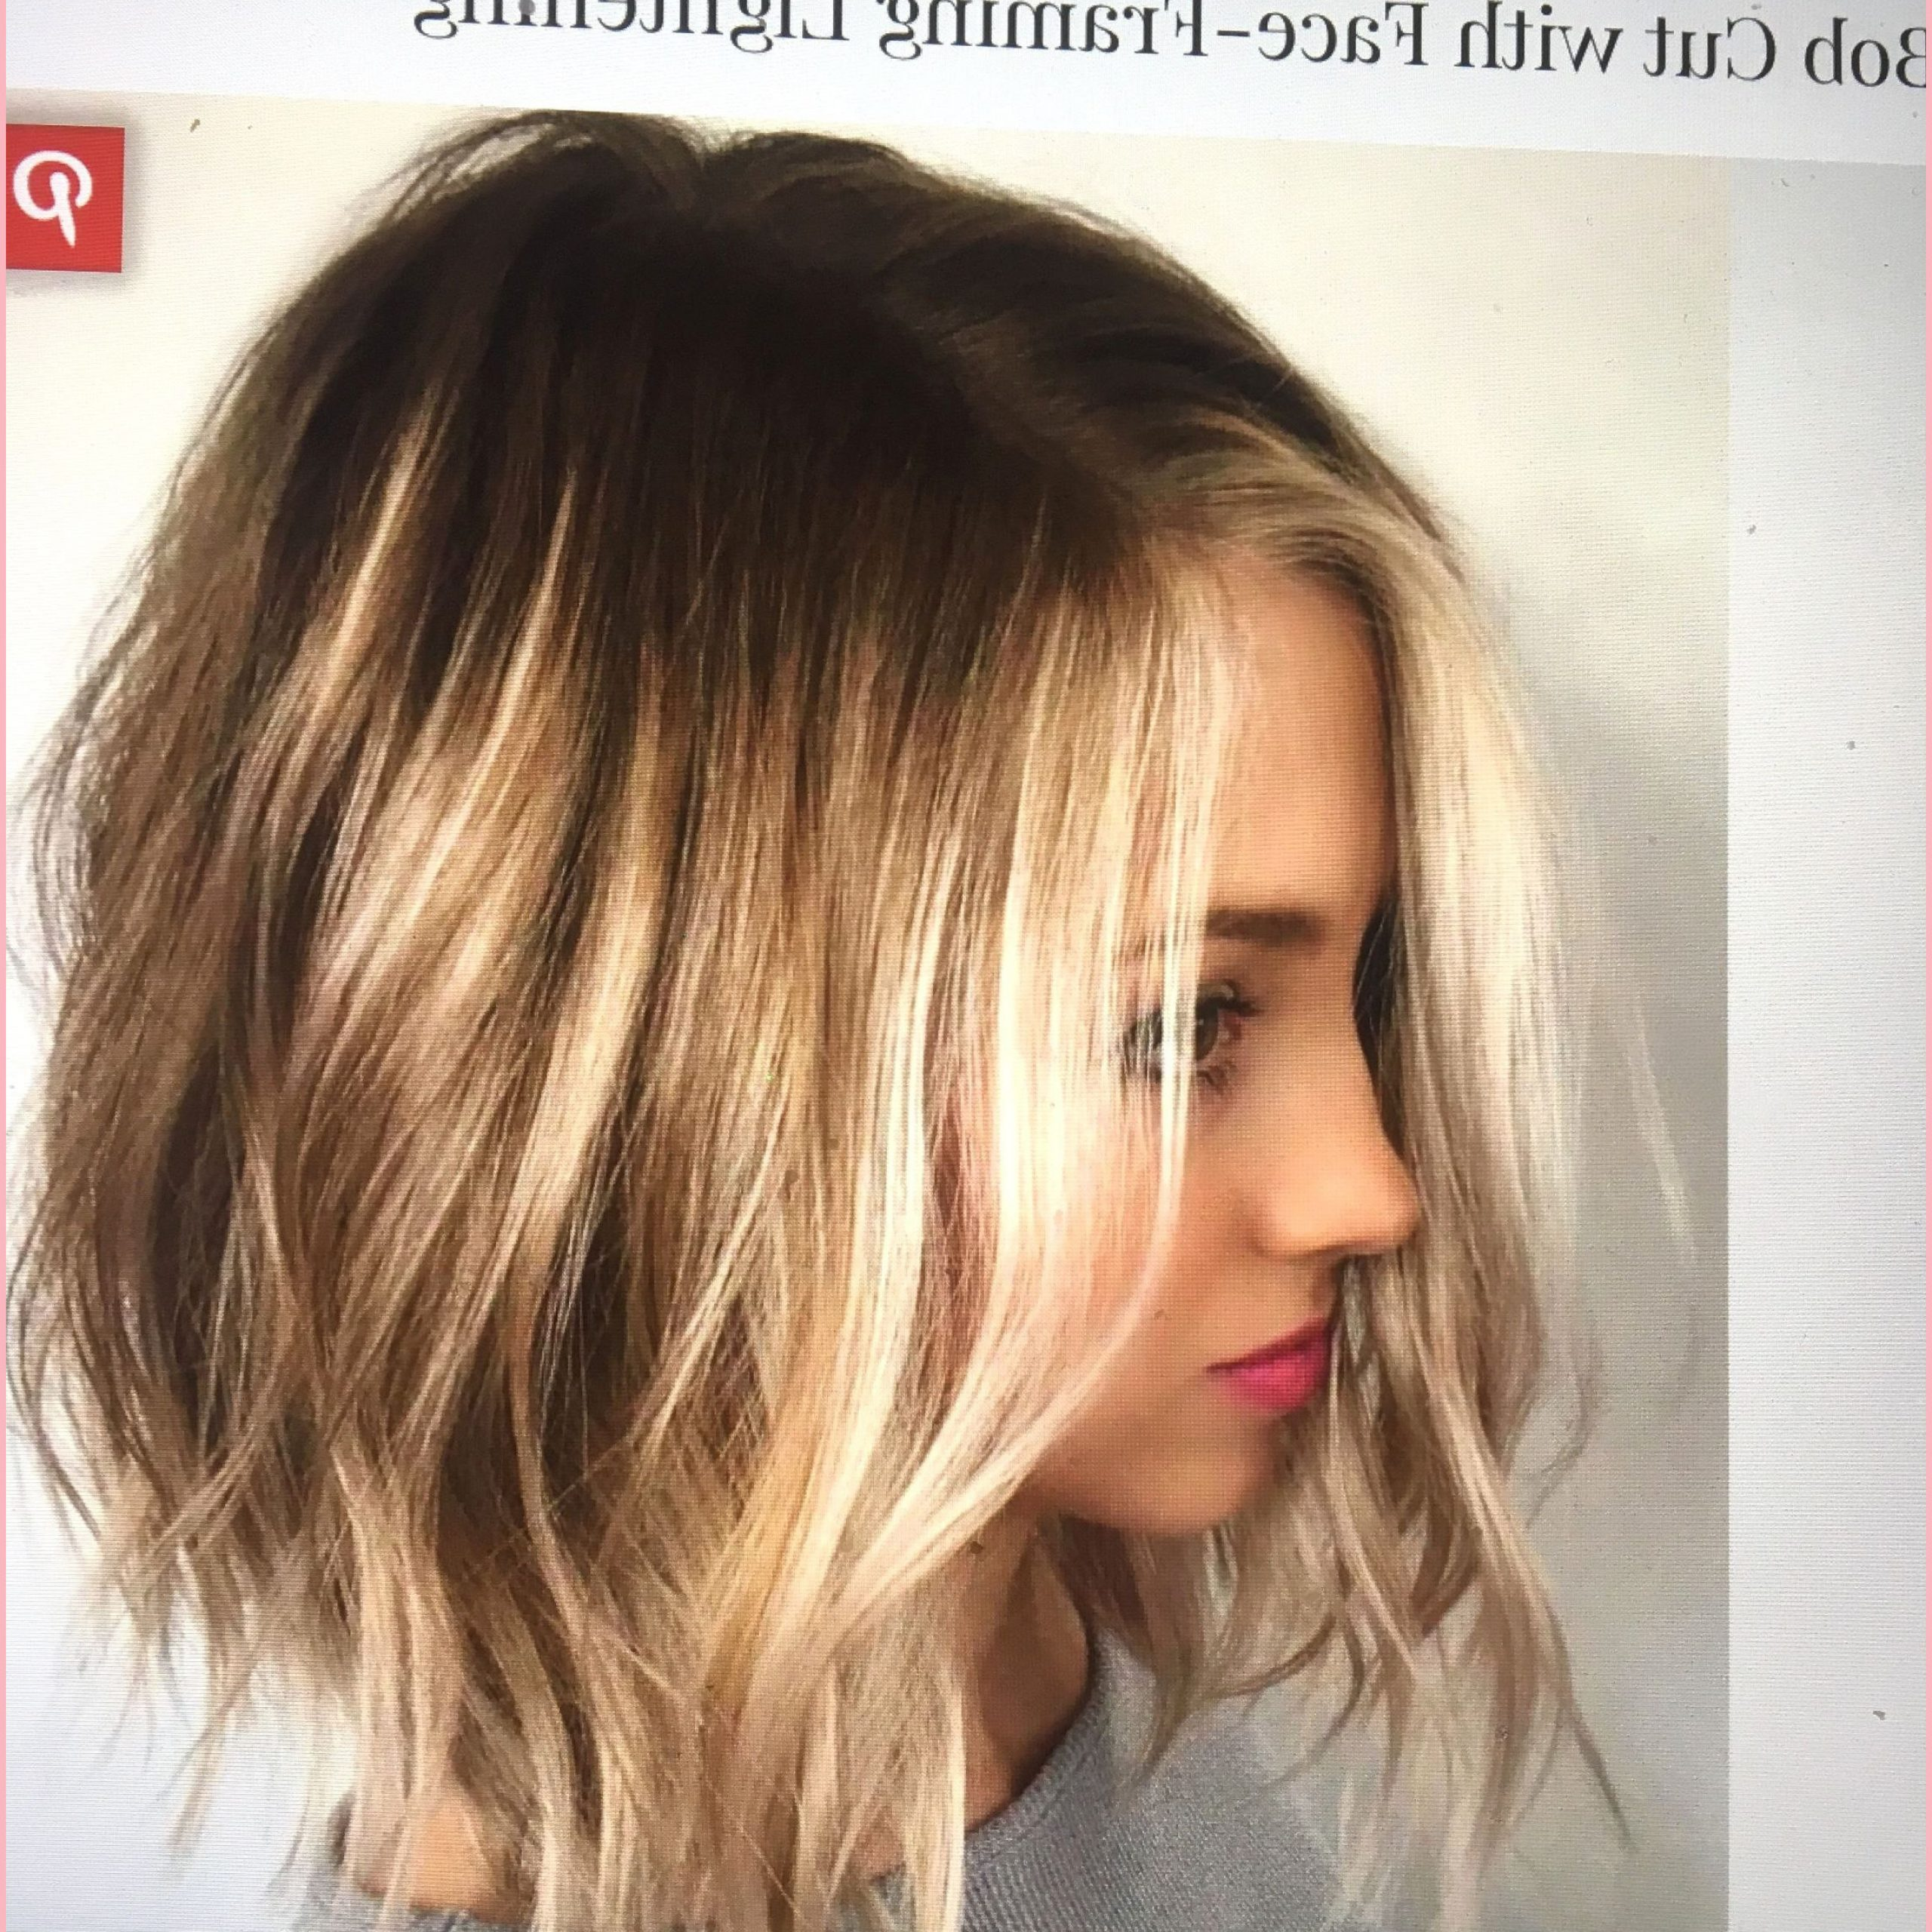 Most Recent Mid Length Layered Ash Blonde Hairstyles Intended For Medium Length Blonde Hairstyles (View 16 of 20)